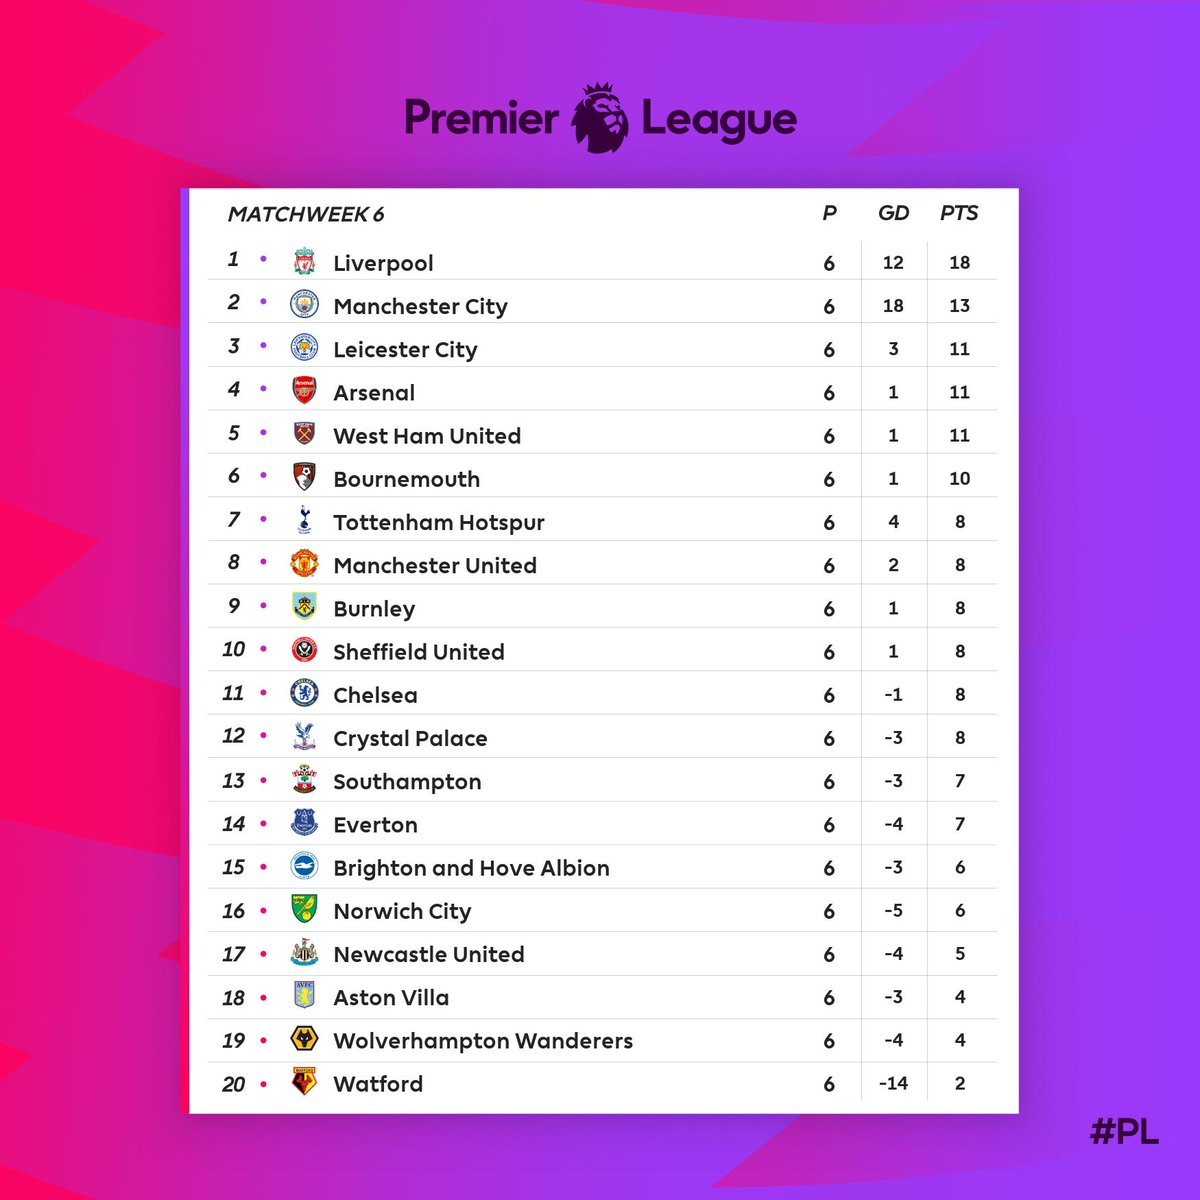 Here's how things look after 6 matches...   #PL https://t.co/F6JiyWhOcr